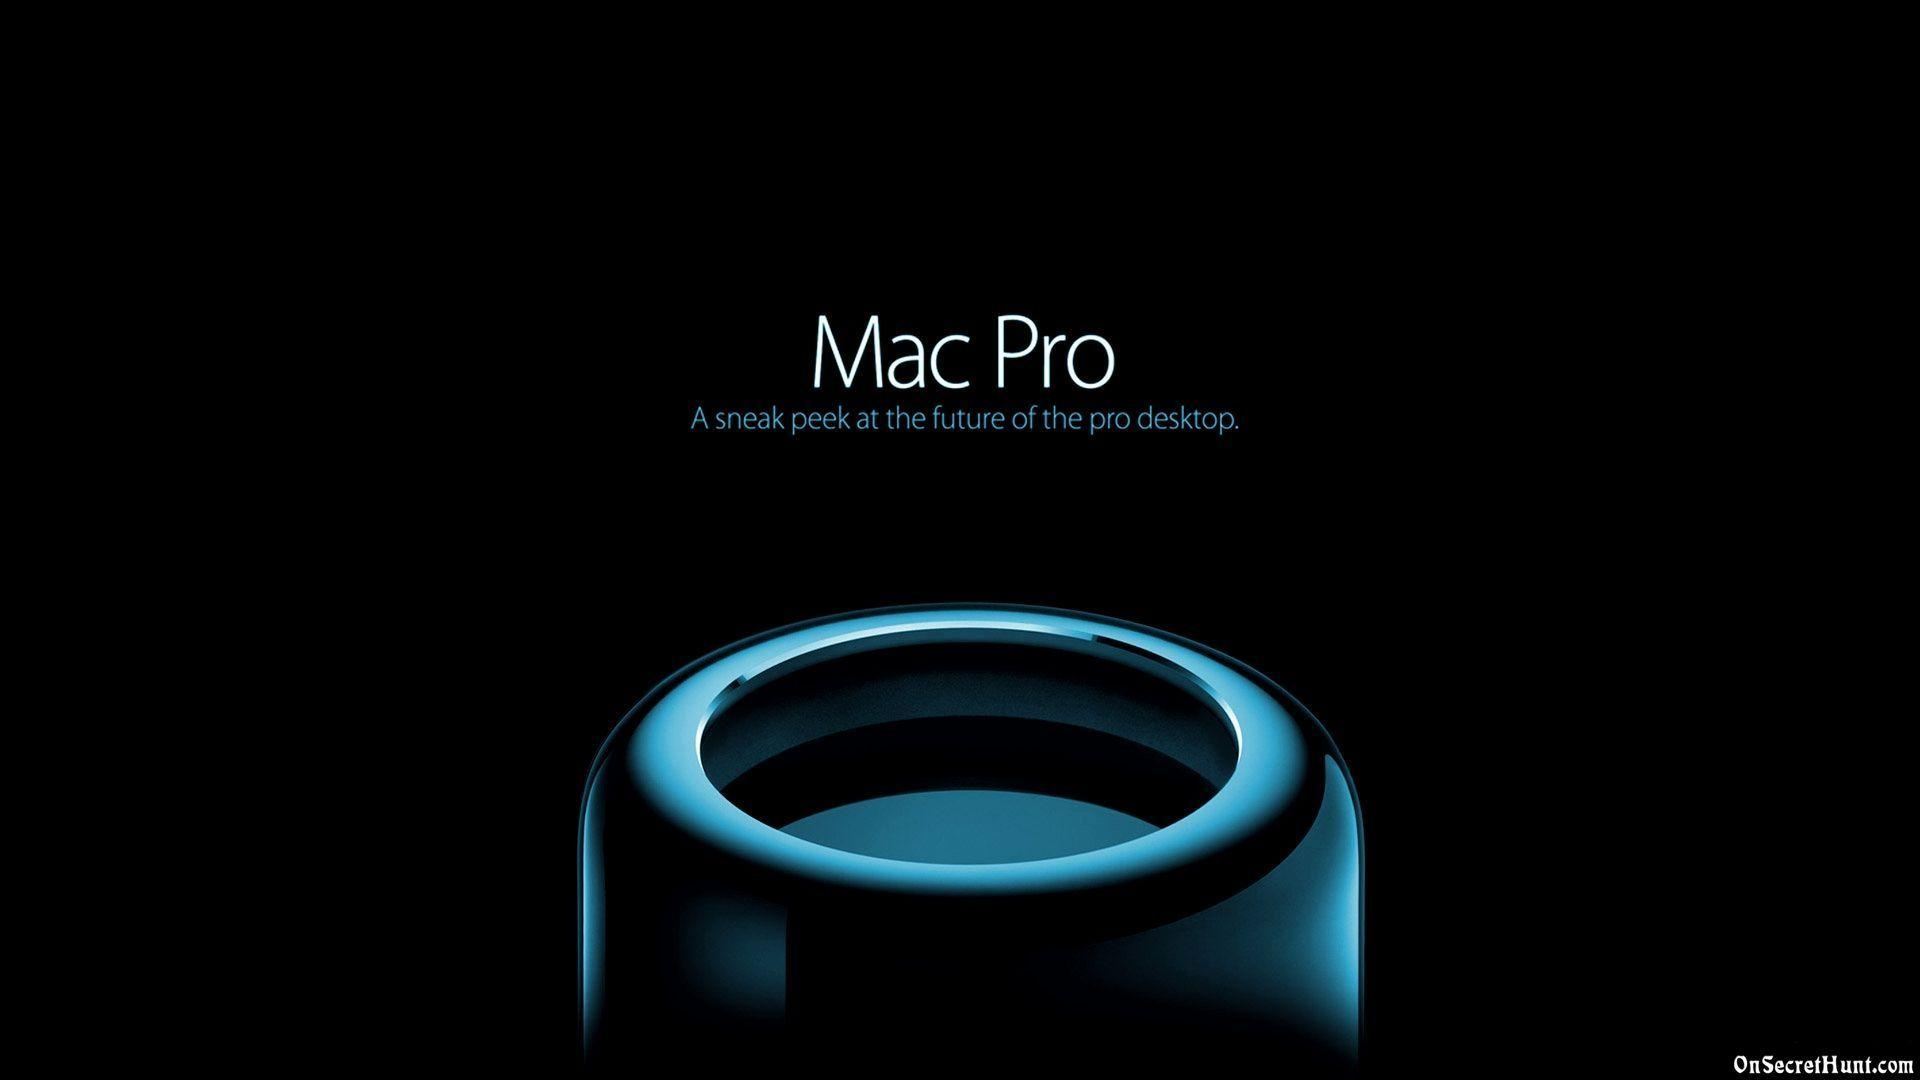 mac pro backgrounds - wallpaper cave